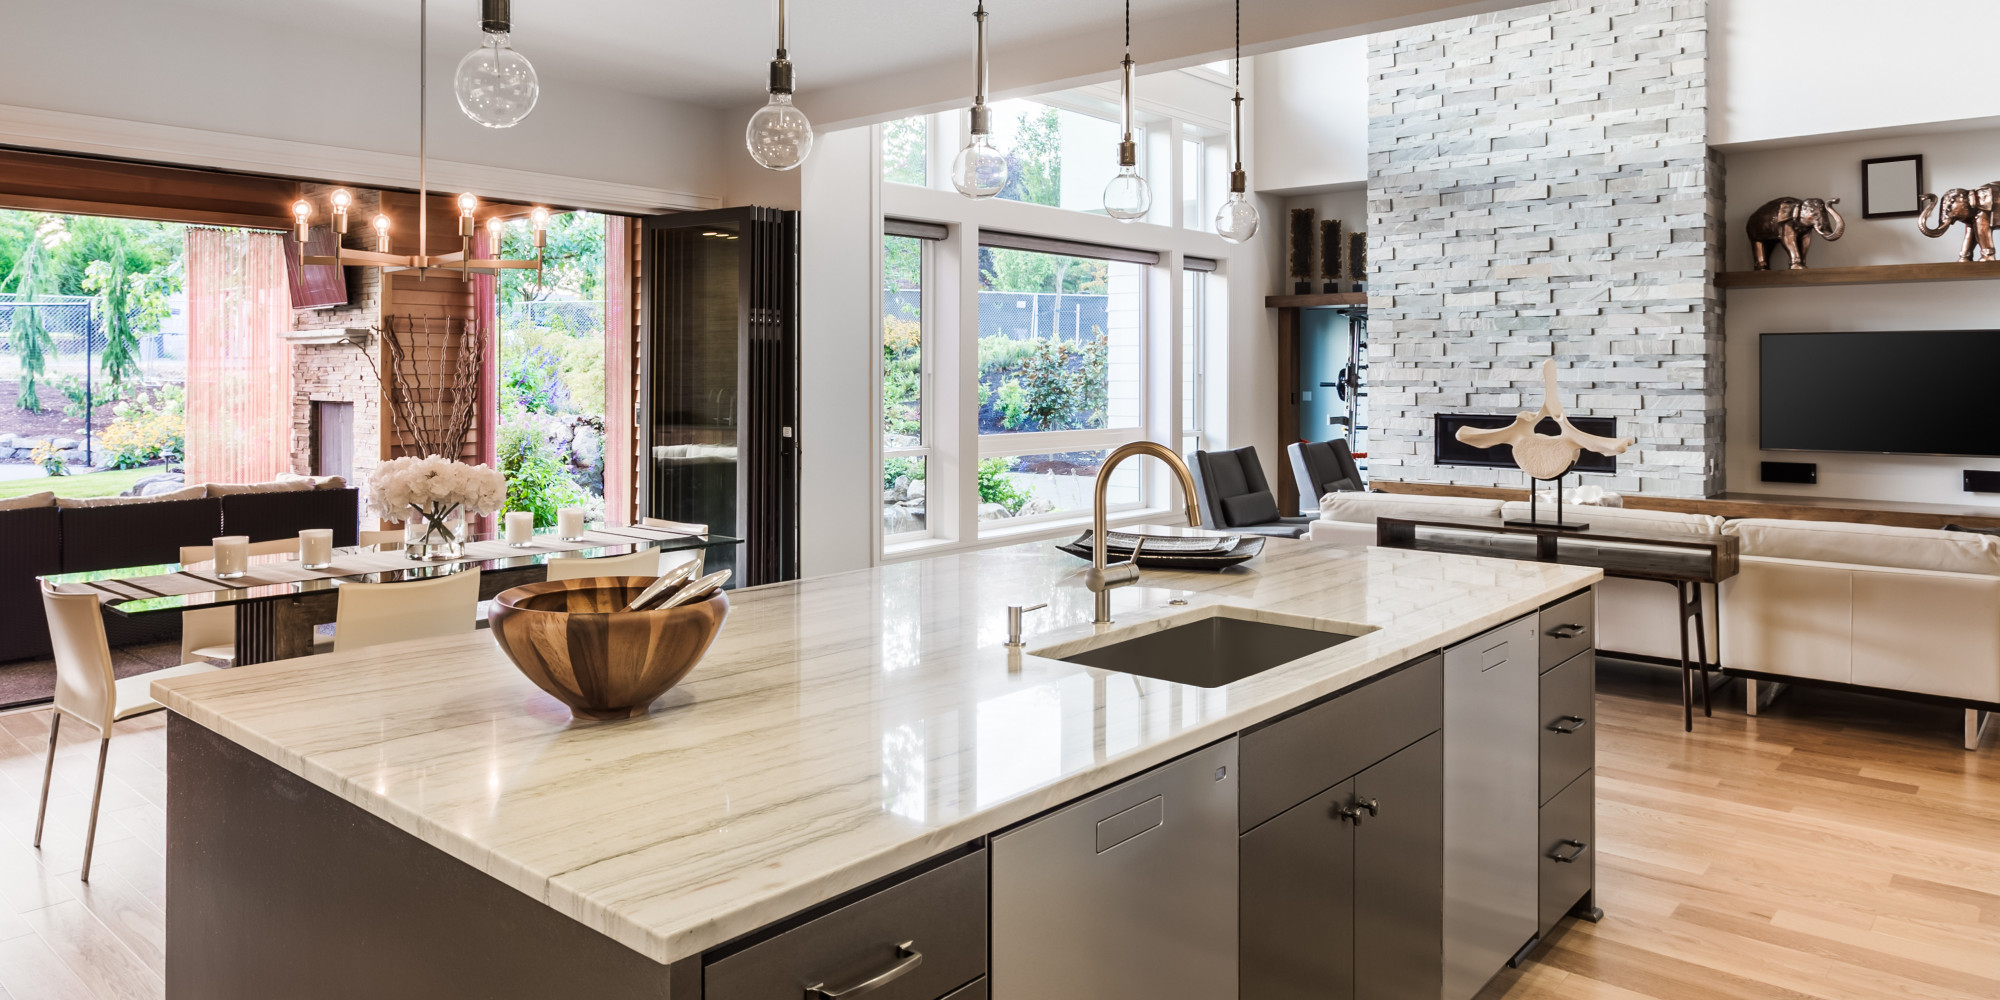 kitchen cabinets greenville sc sunflower accessories 7 easy ways to budget and bathroom remodeling ...